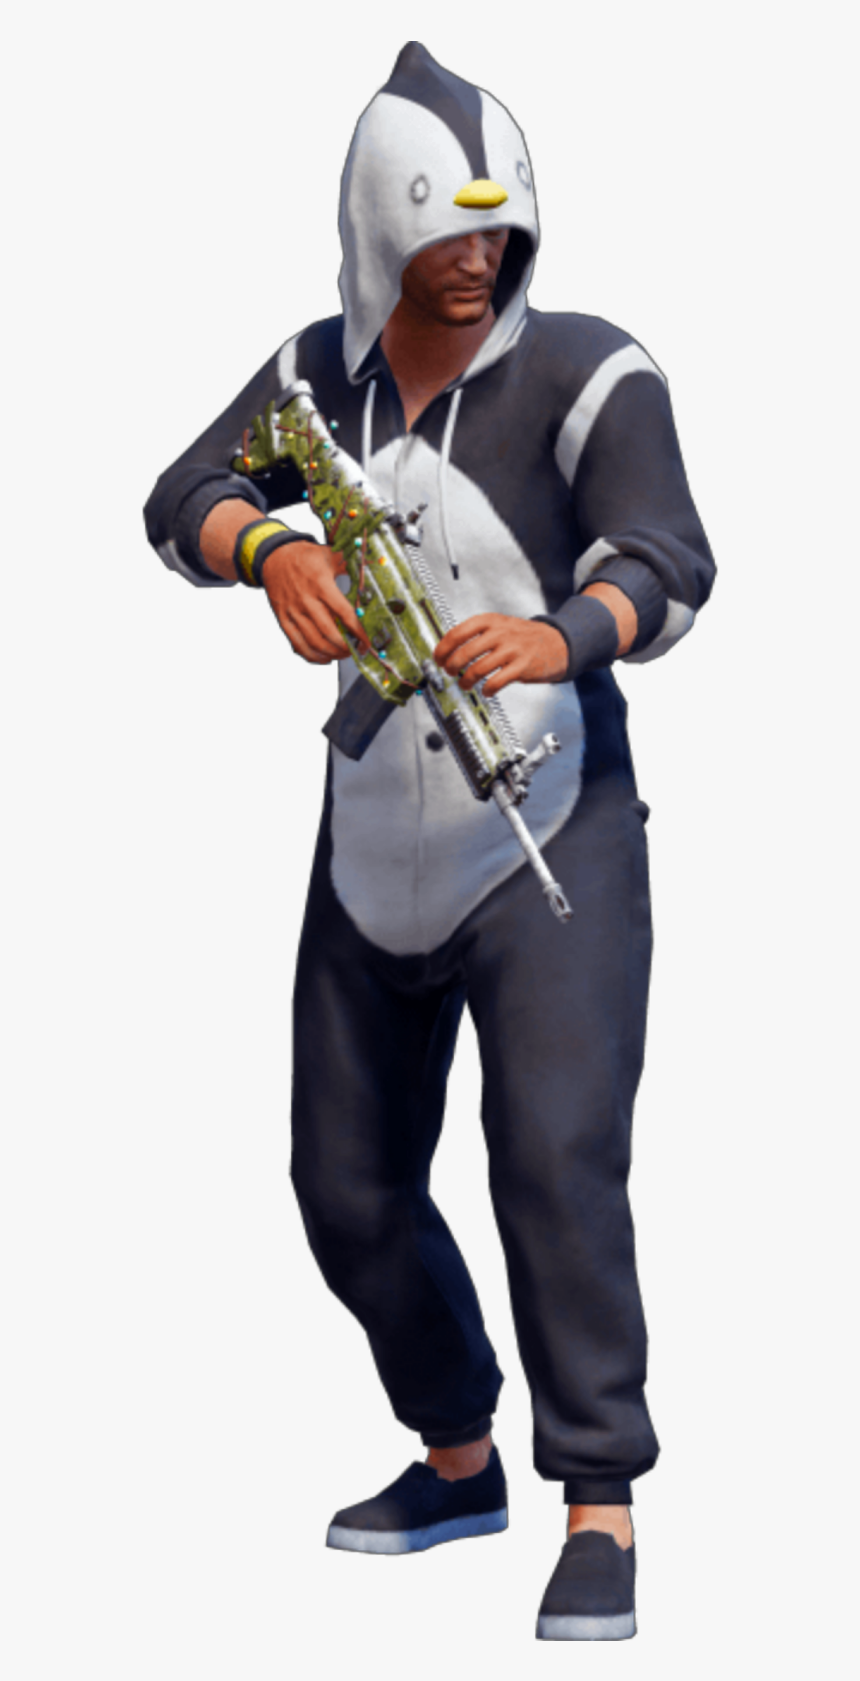 [ Best ] New Pubg Png - Pubg Characters Hd Png, Transparent Png, Free Download